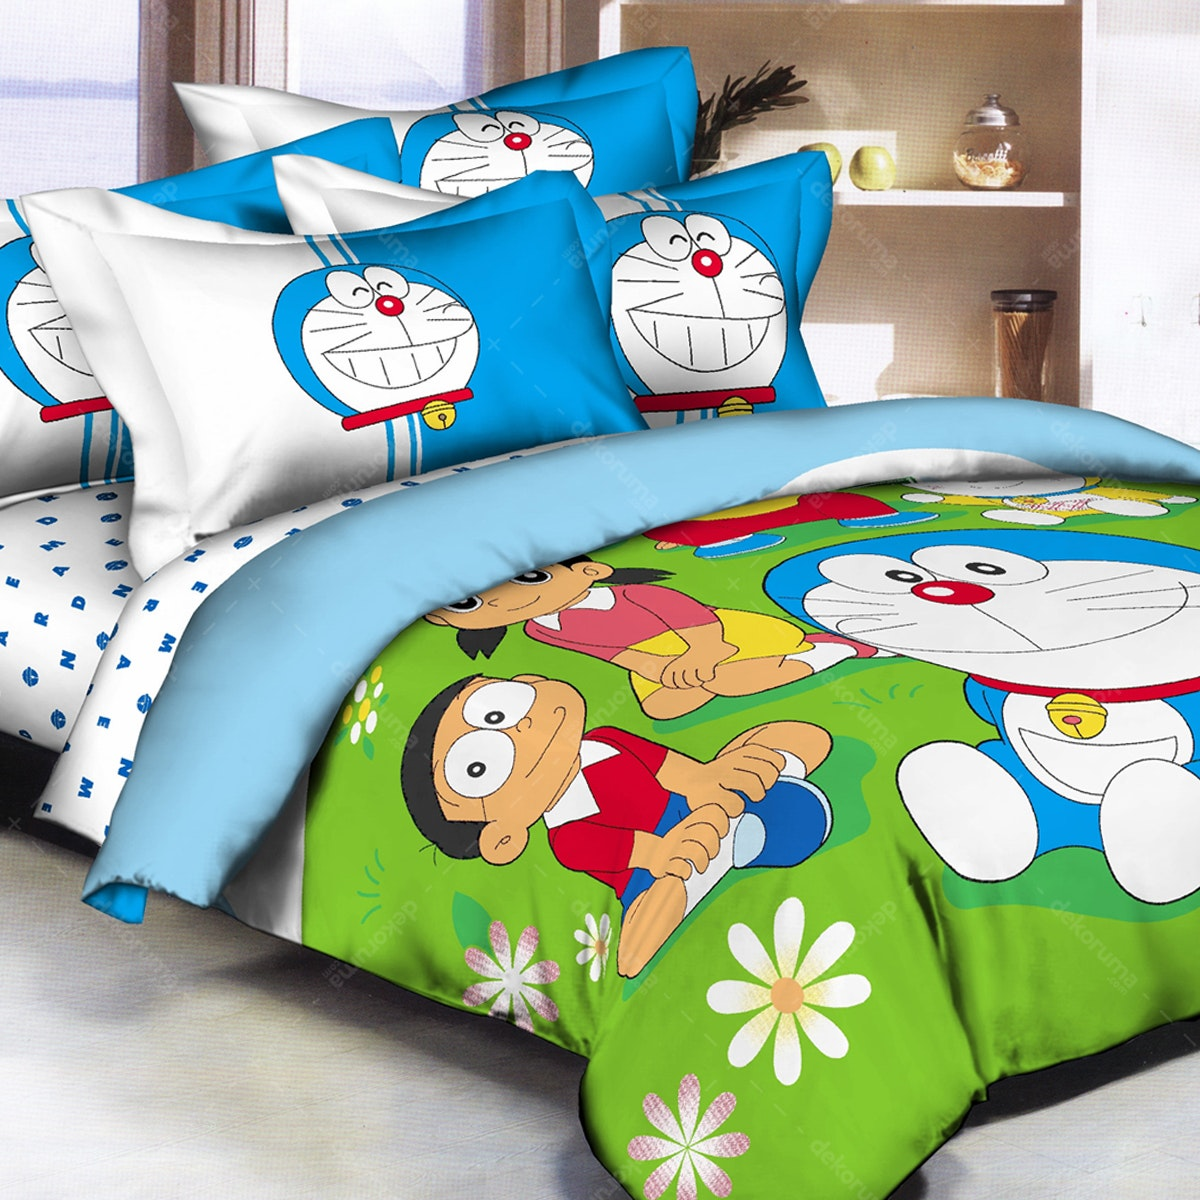 Pantone Doraemon Garden Bed Cover set King Fitted 180 x 200 x 30